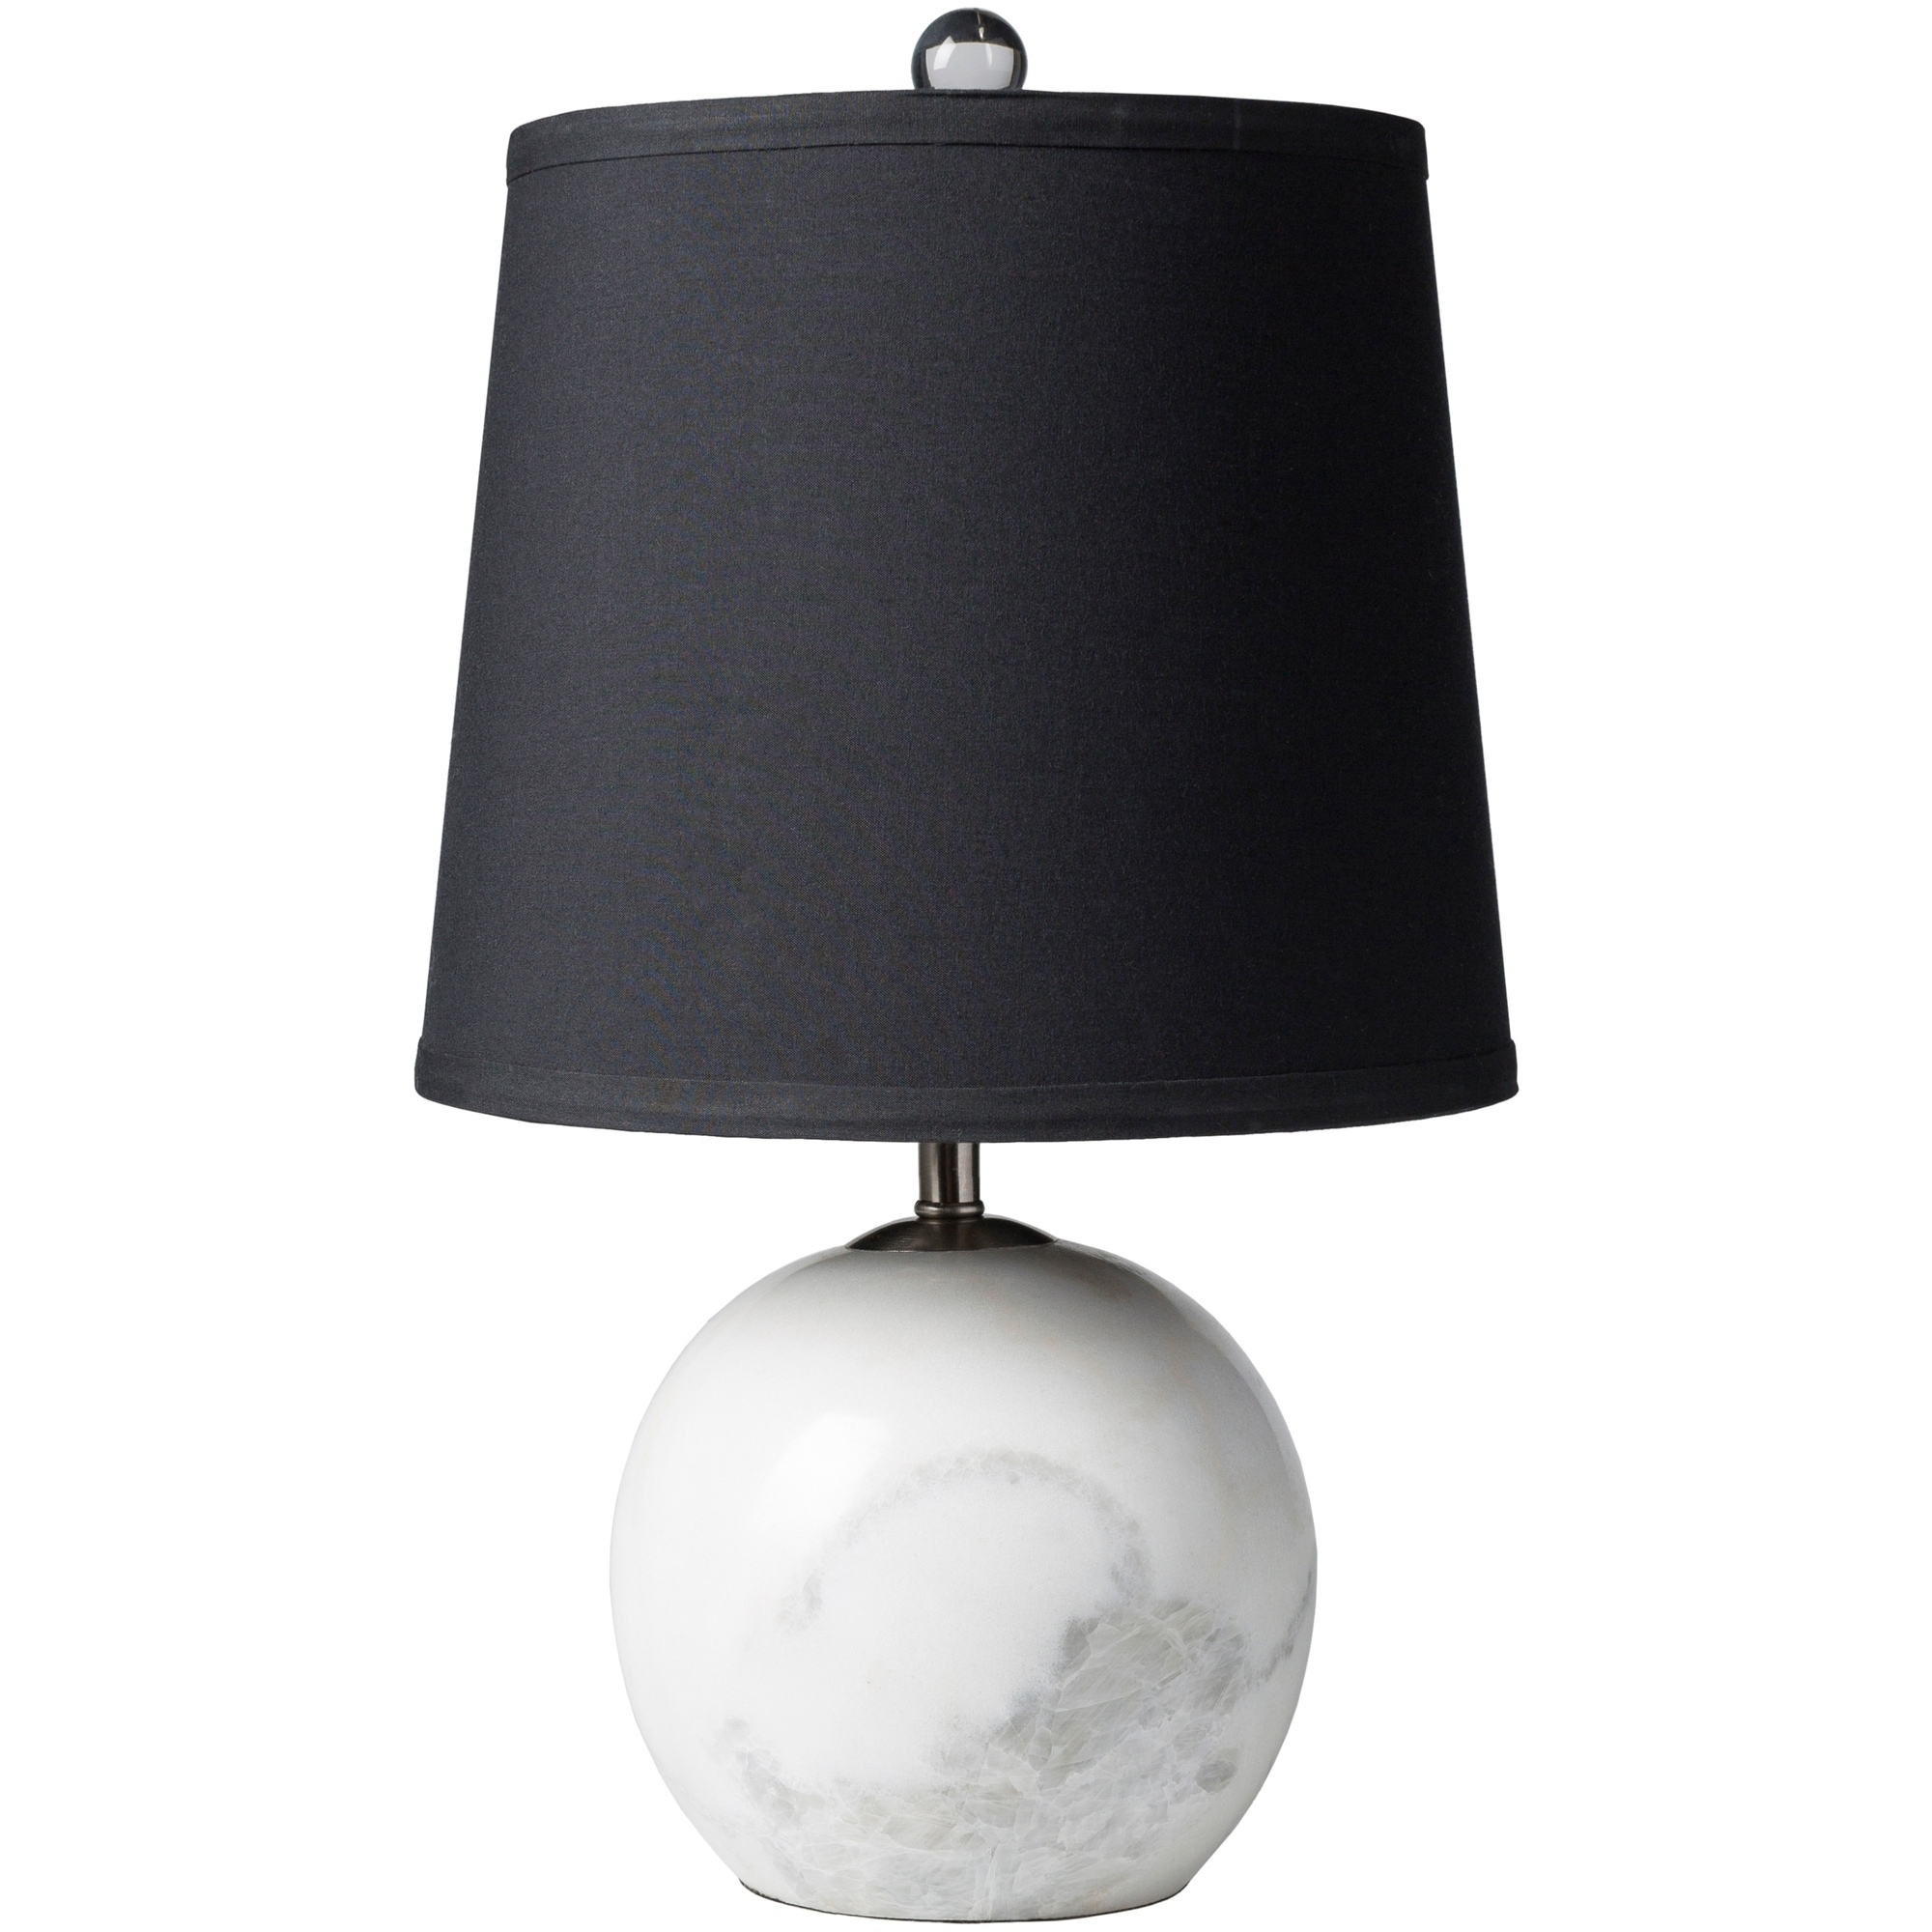 SURYA Zaguide Table Lamp with White Base and Black Shade ...